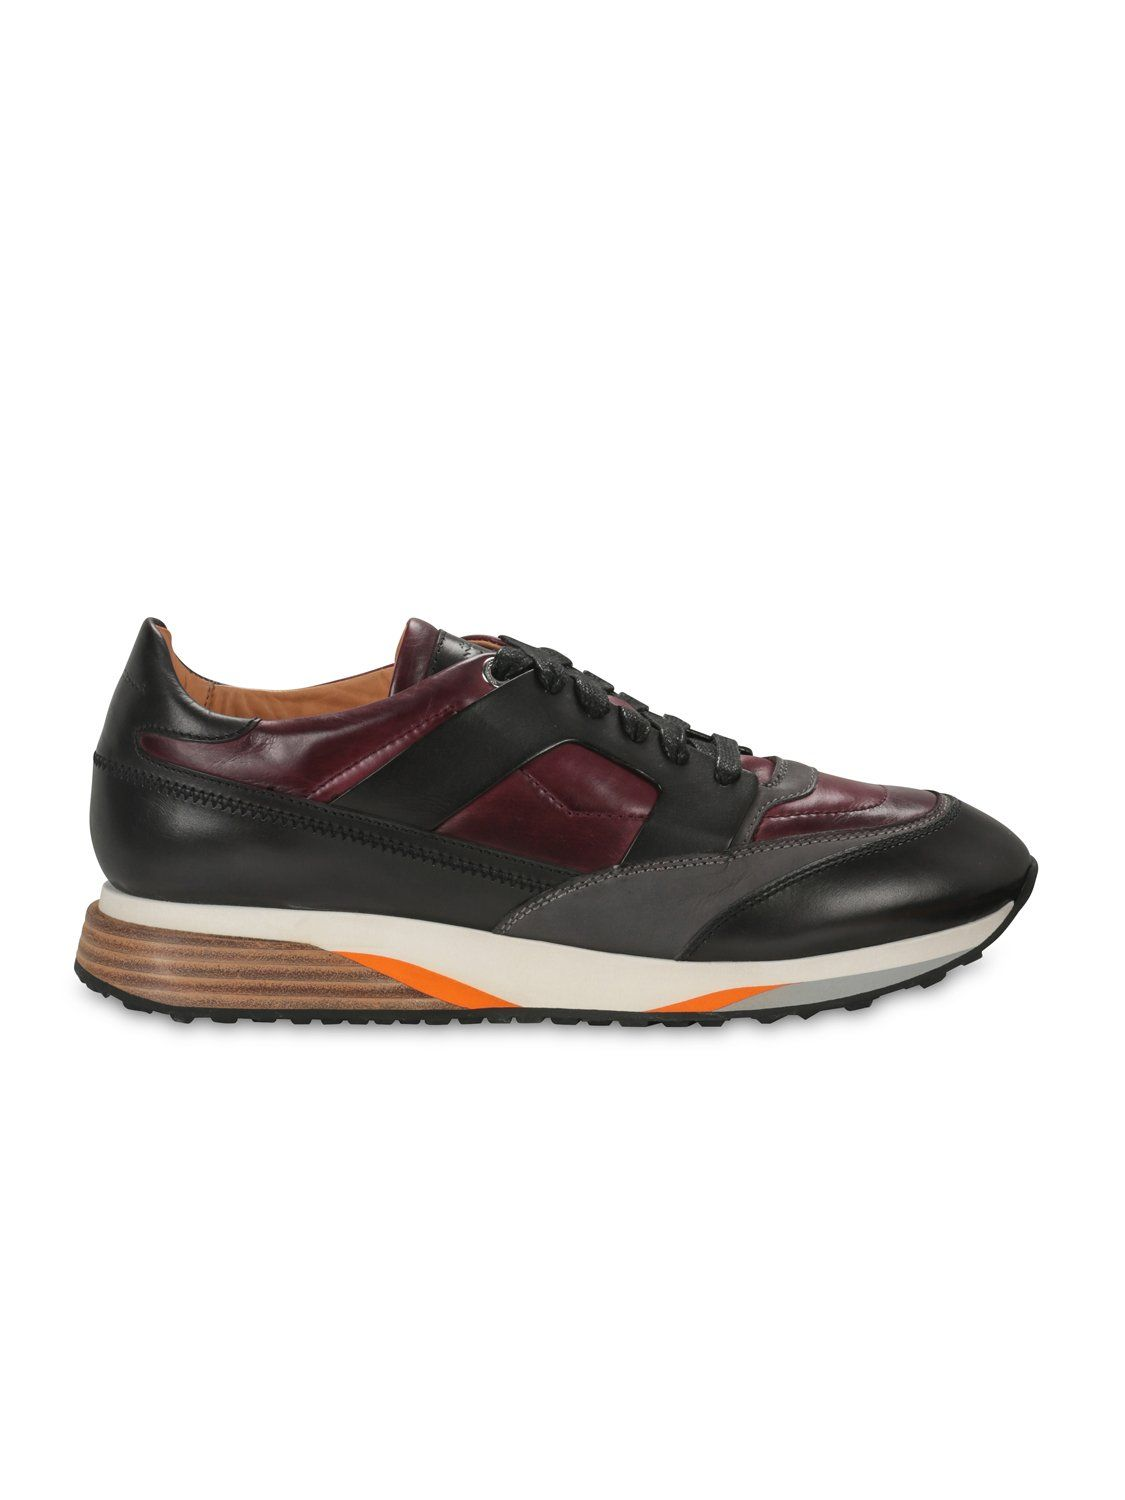 Santoni Dress Trainer (Maroon) UK 8.5 / EU 42